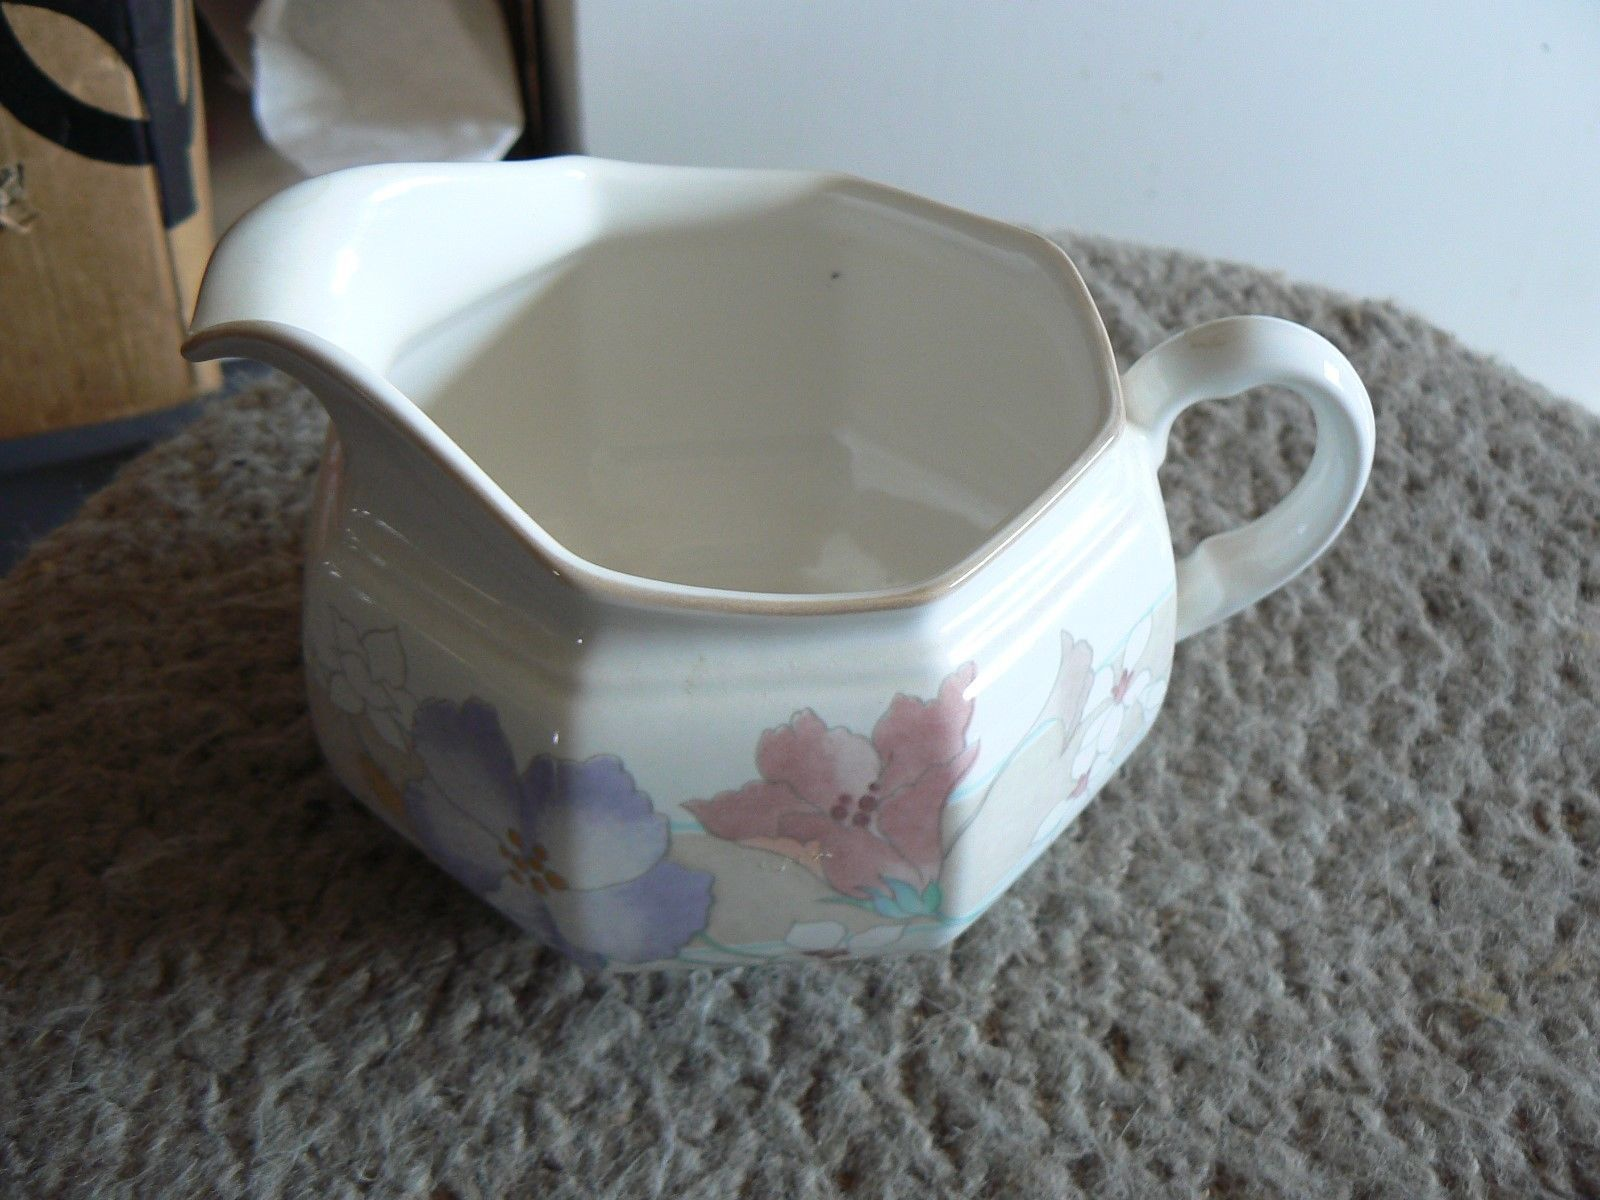 Primary image for Mikasa Marika gravy boat 1 available